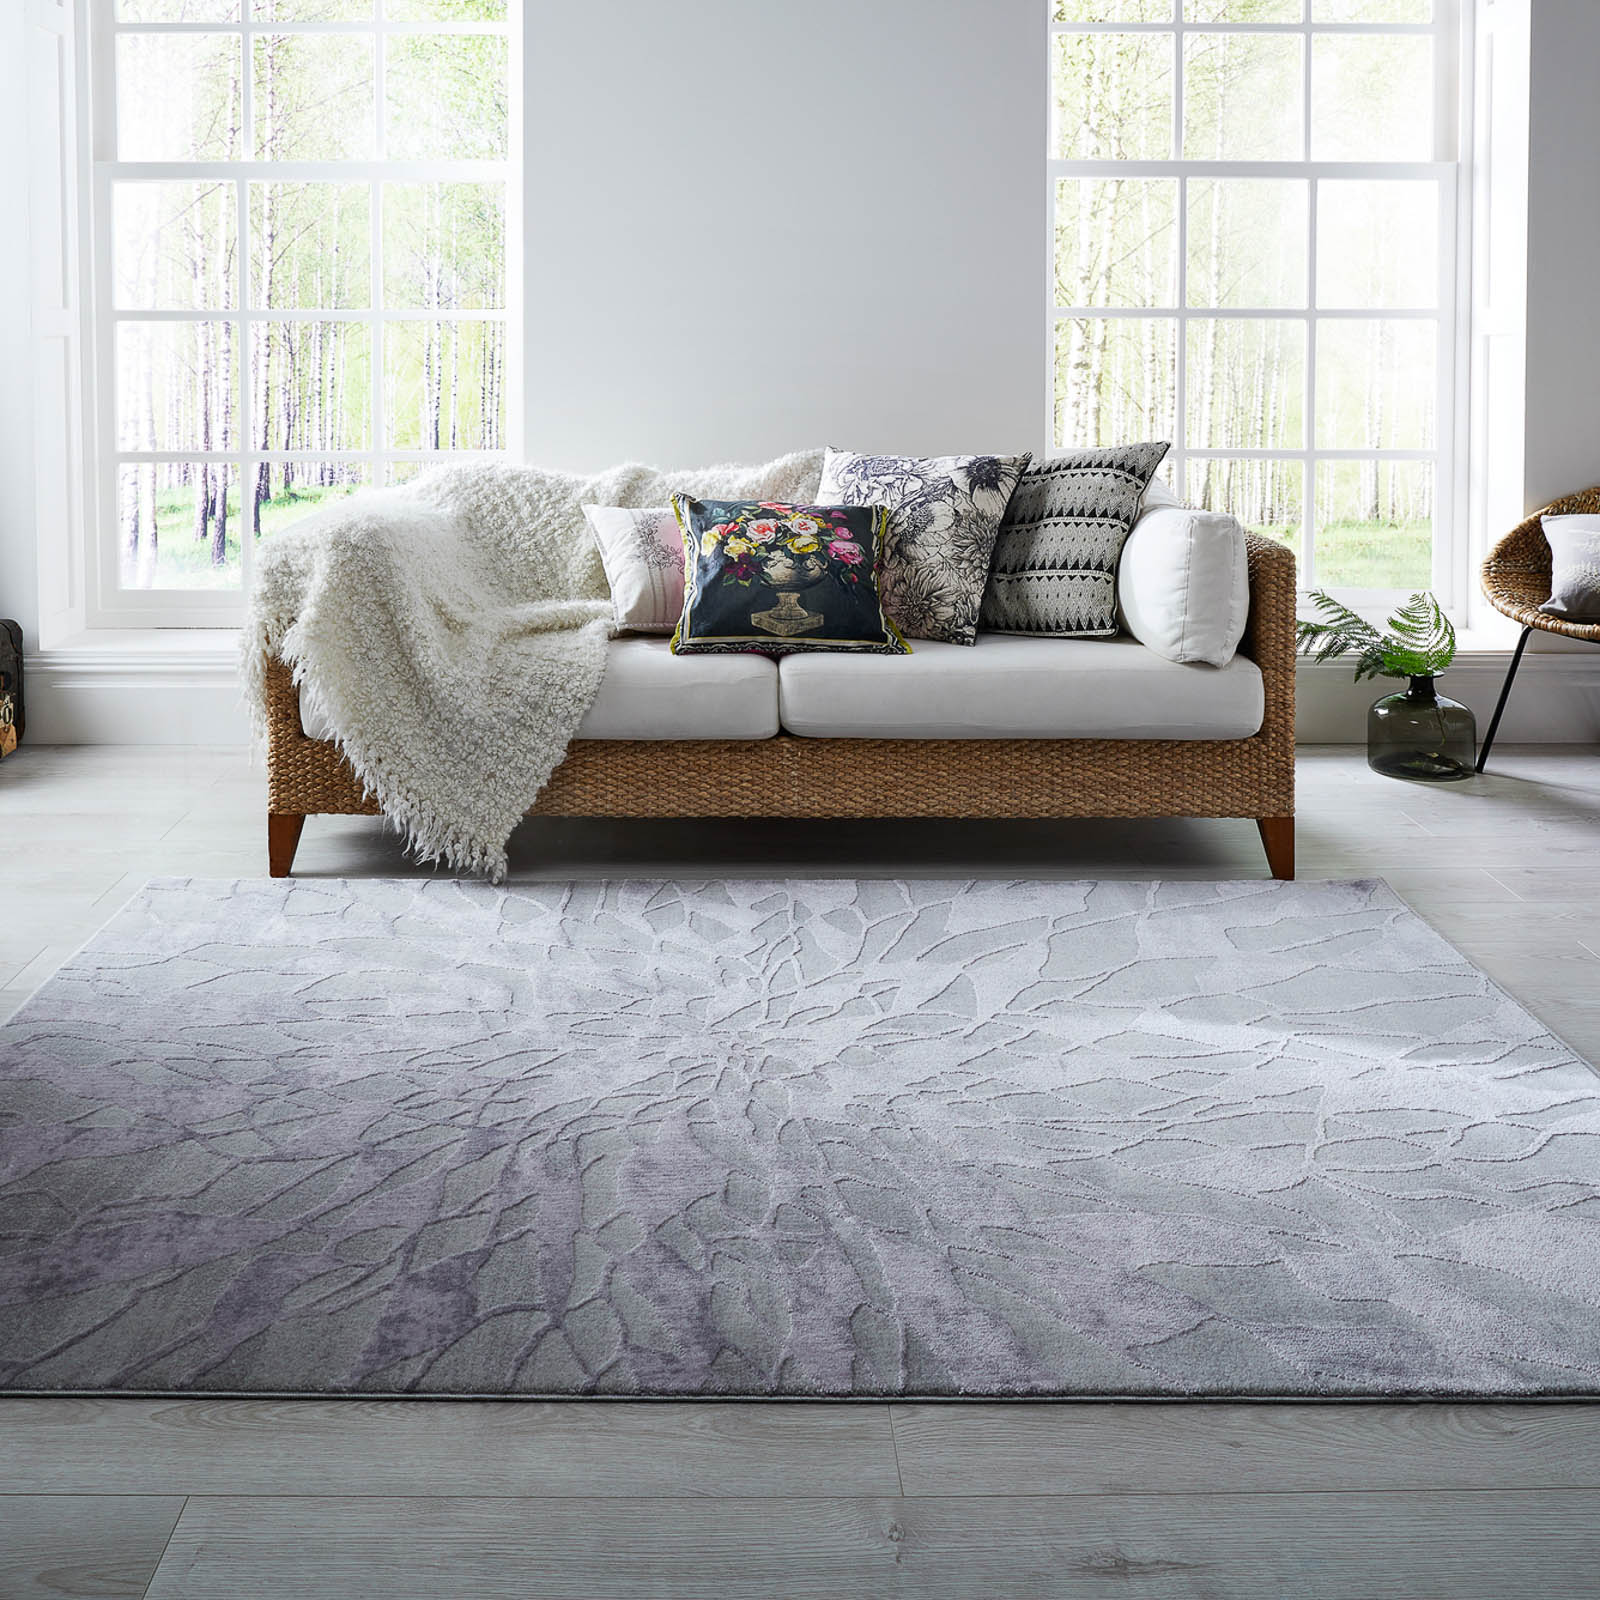 shop alpaca rugs online from the rug seller with free uk delivery